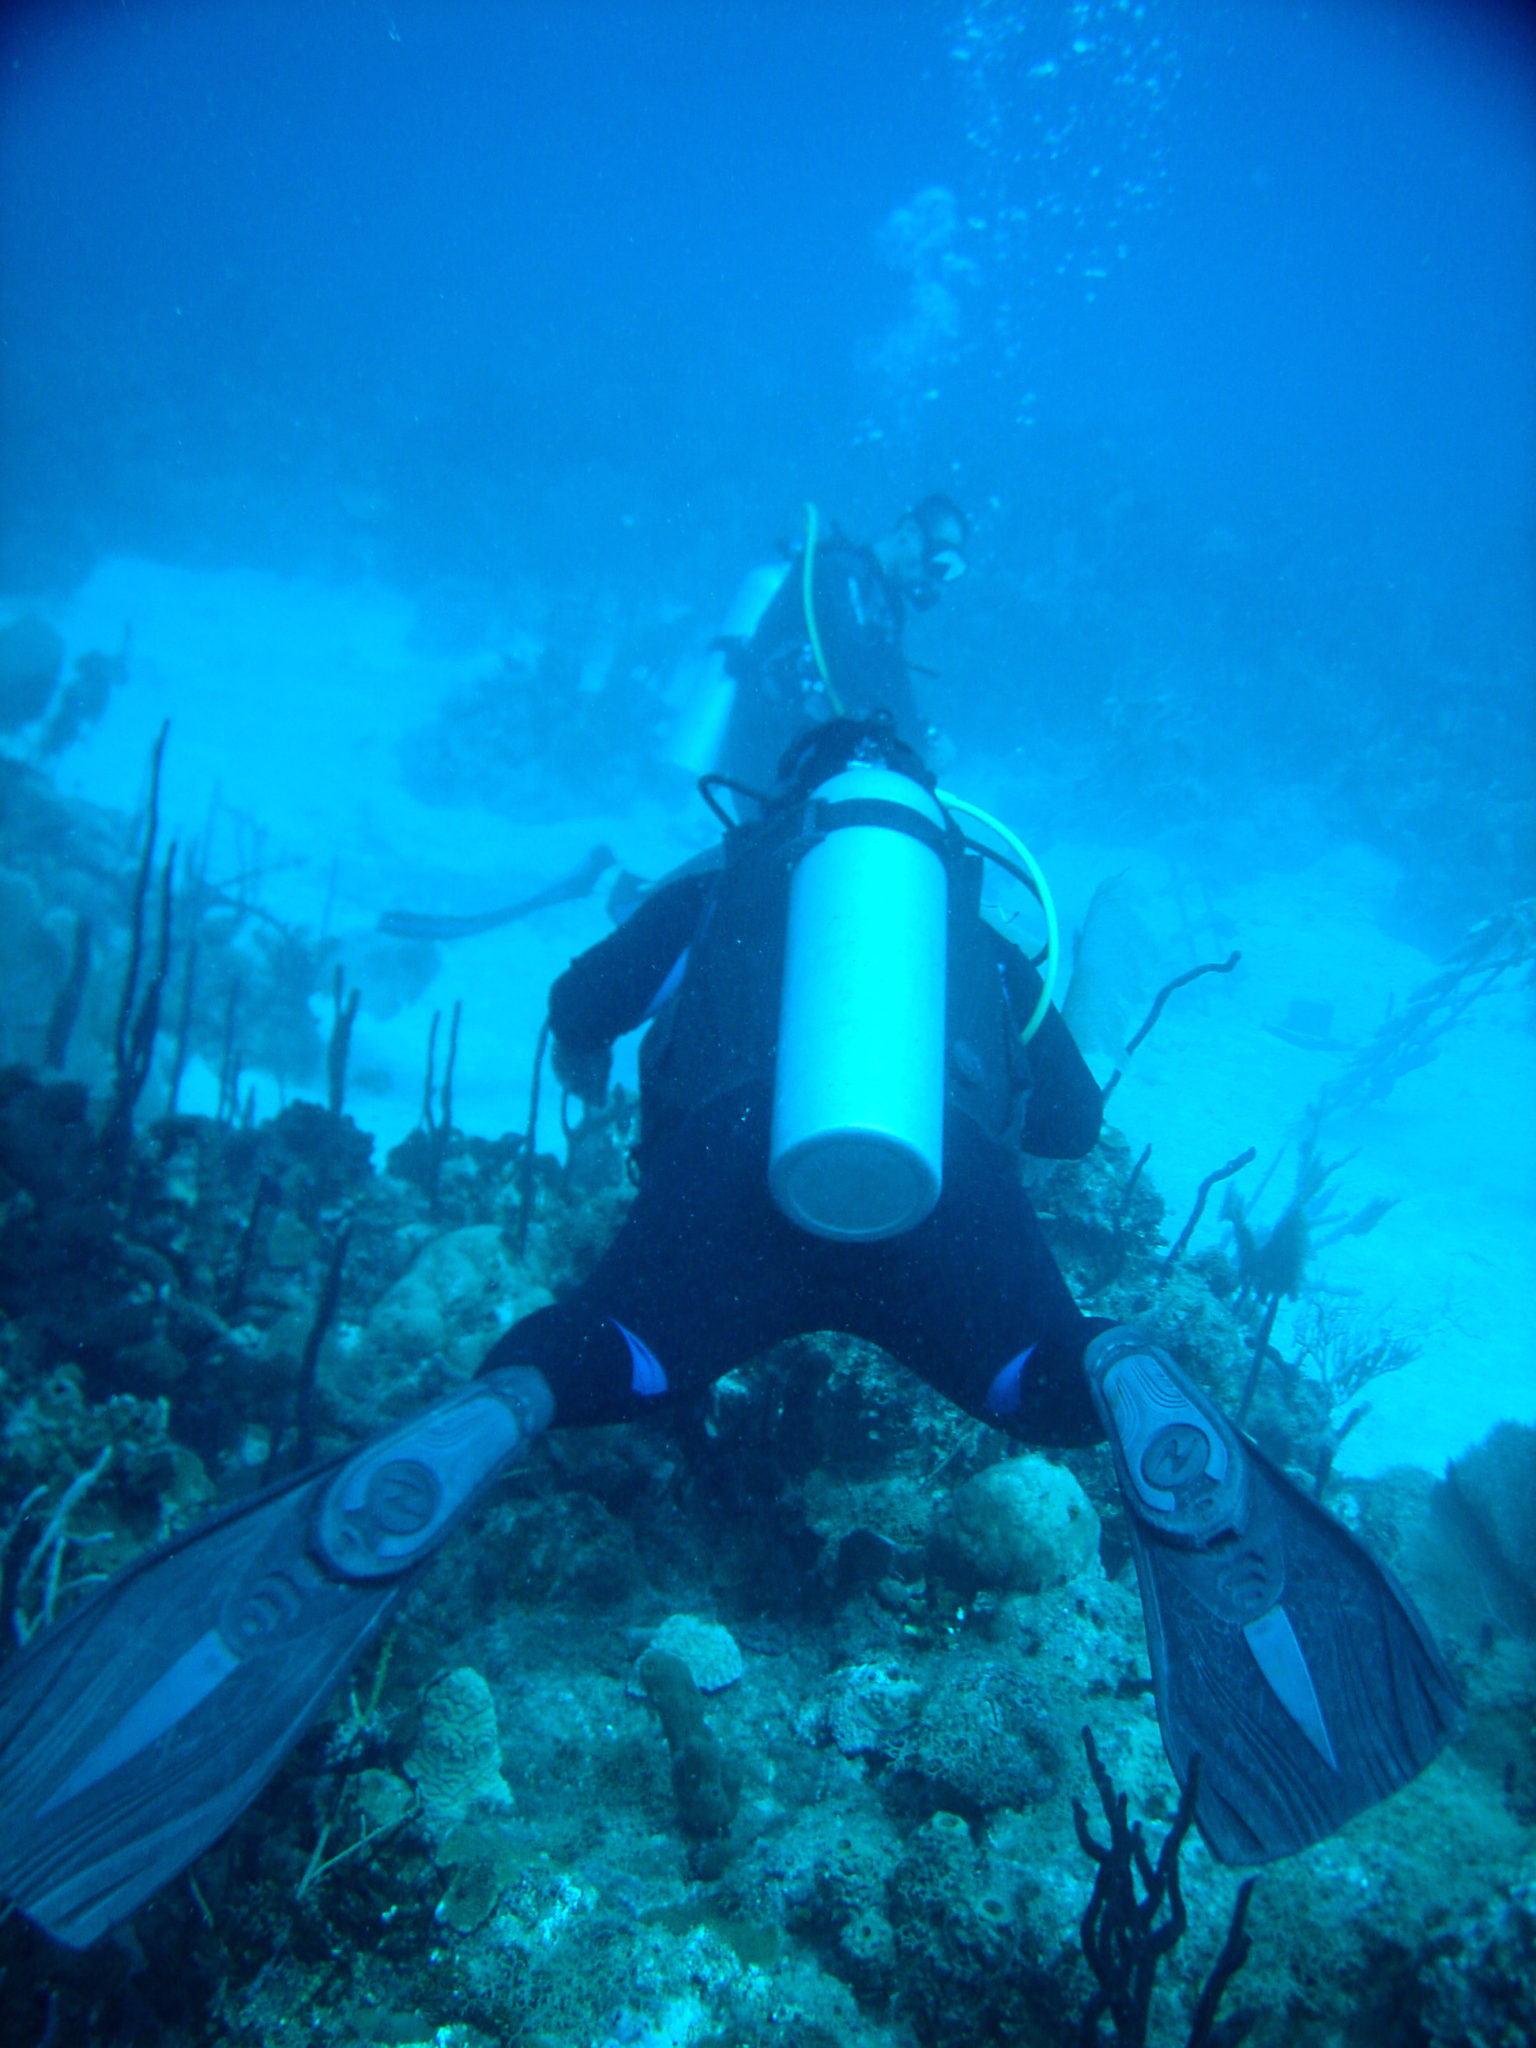 Republique_dominicaine_roadtrip_bayahibe_plongee_scubafun_hema_dominicus_reef